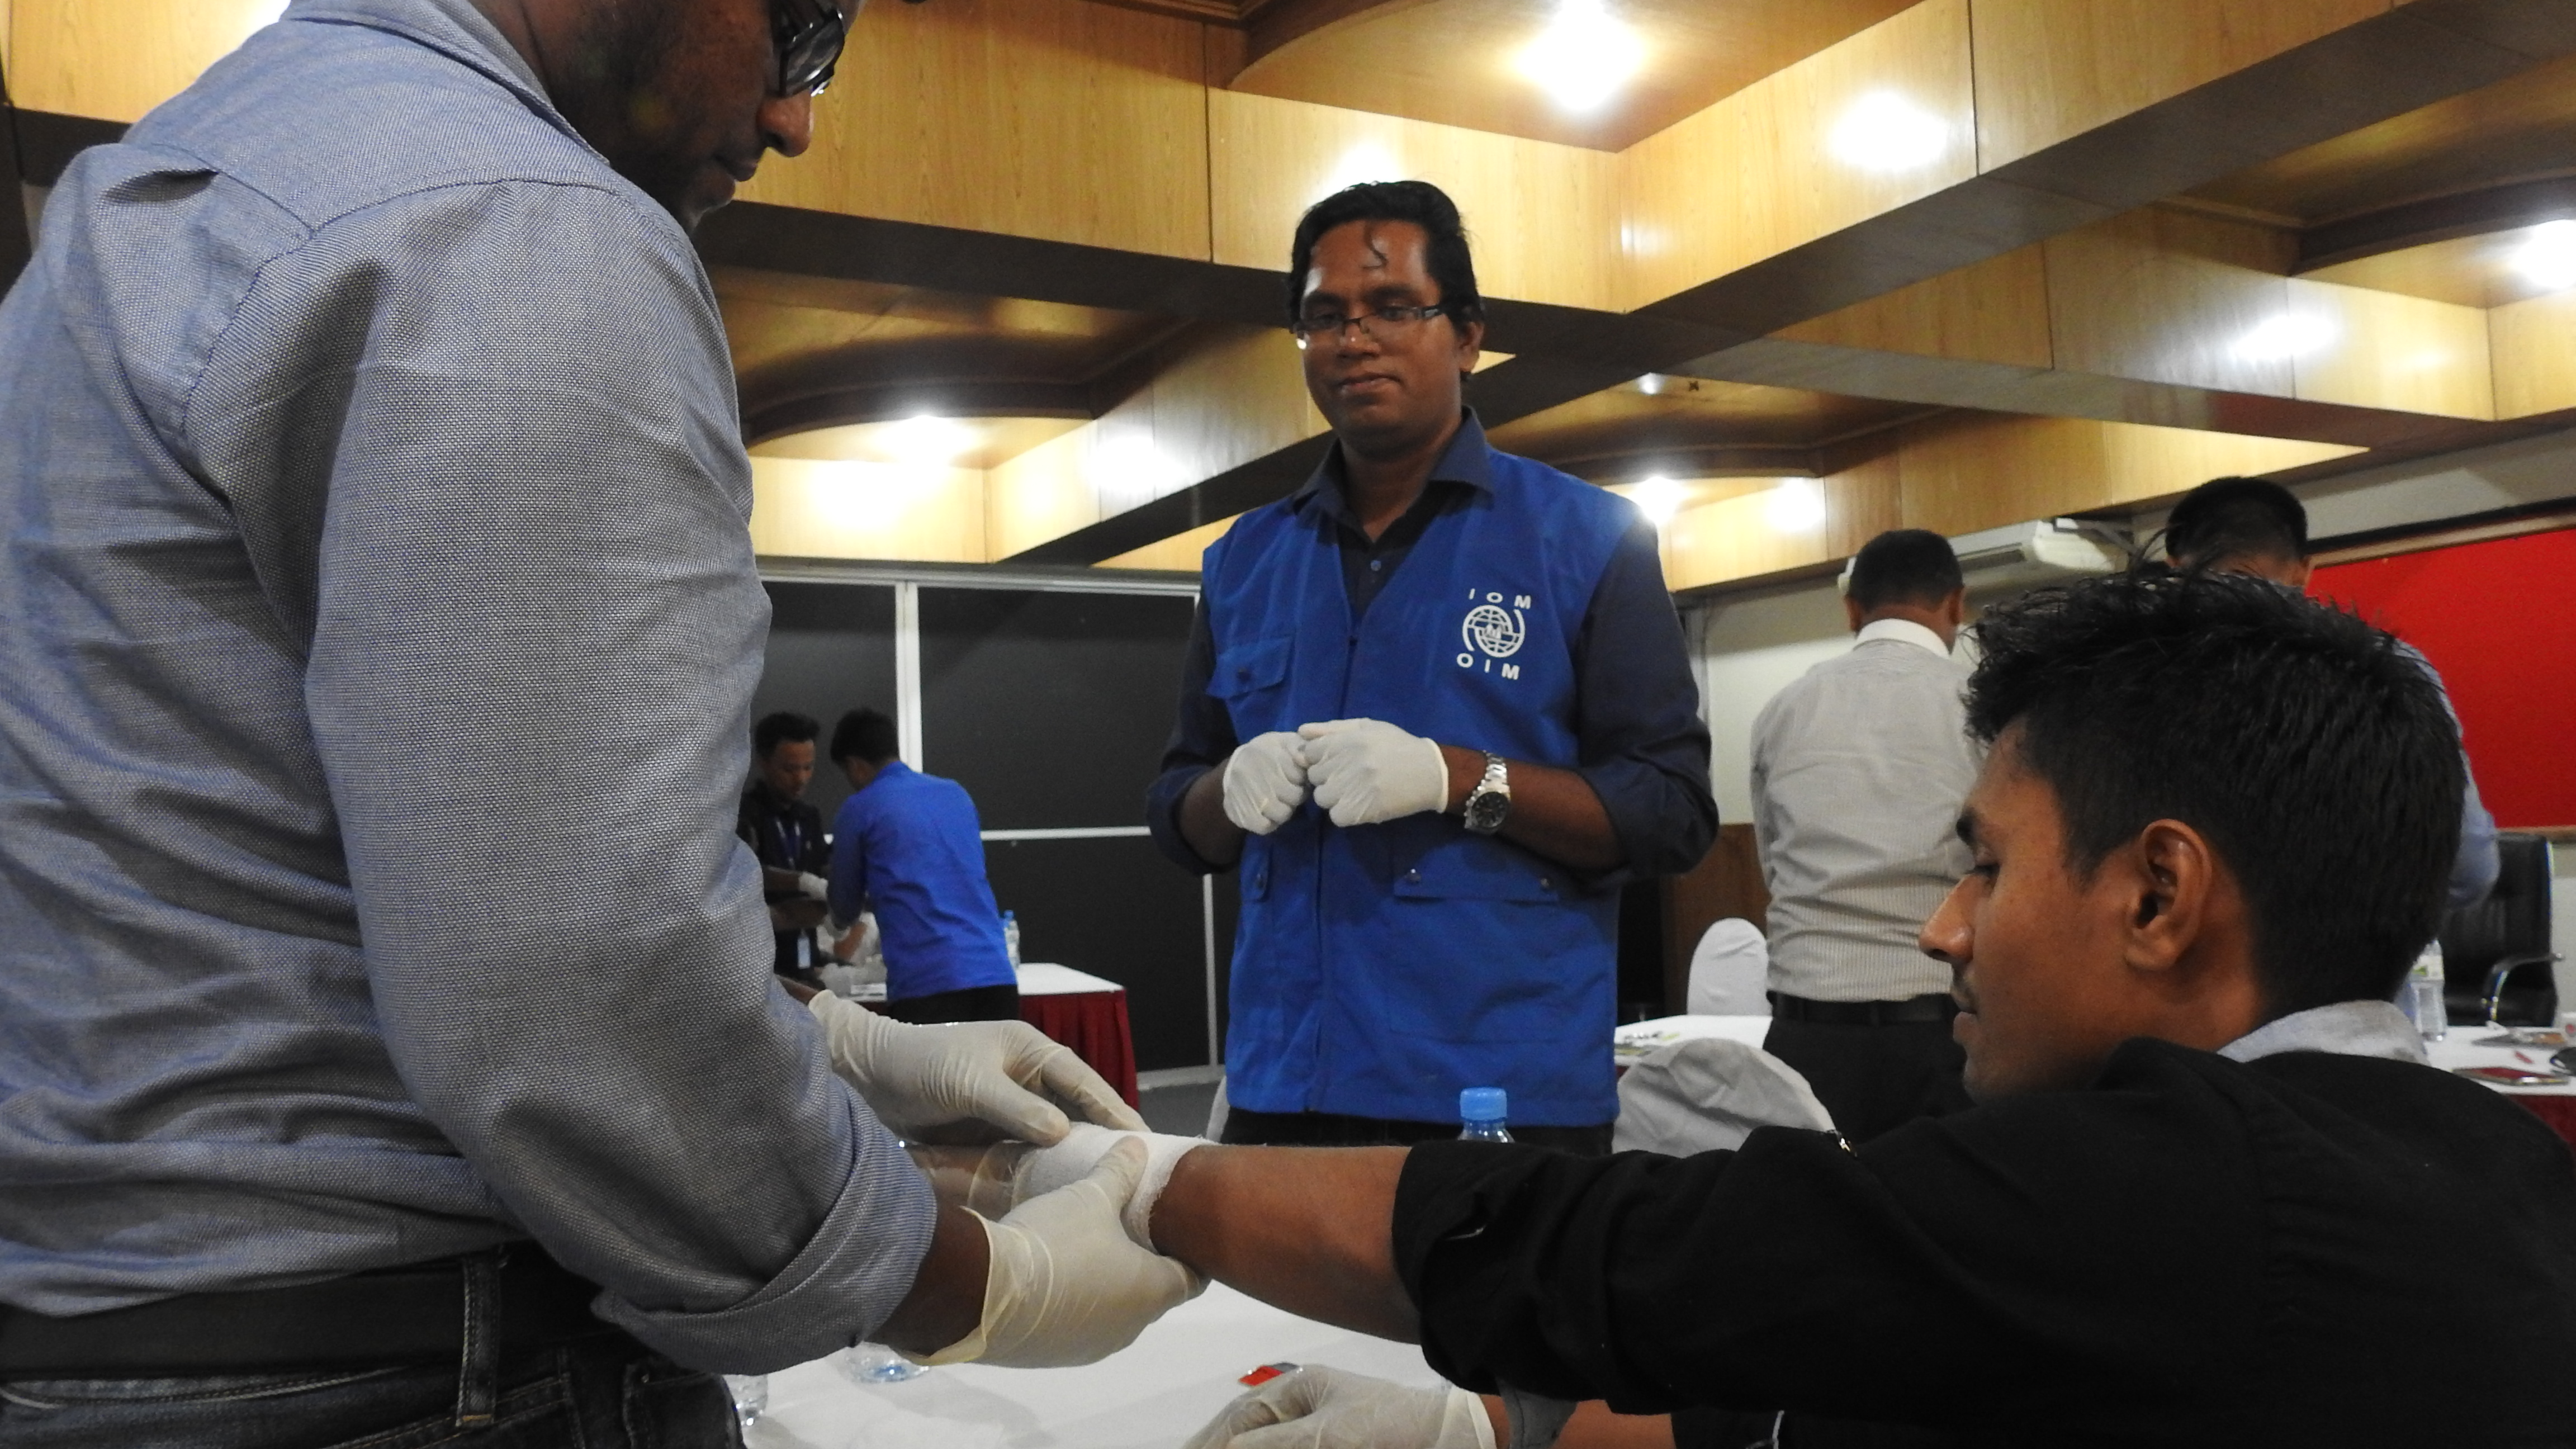 IOM Rolls Out First Aid Training for Rohingya Refugees, But